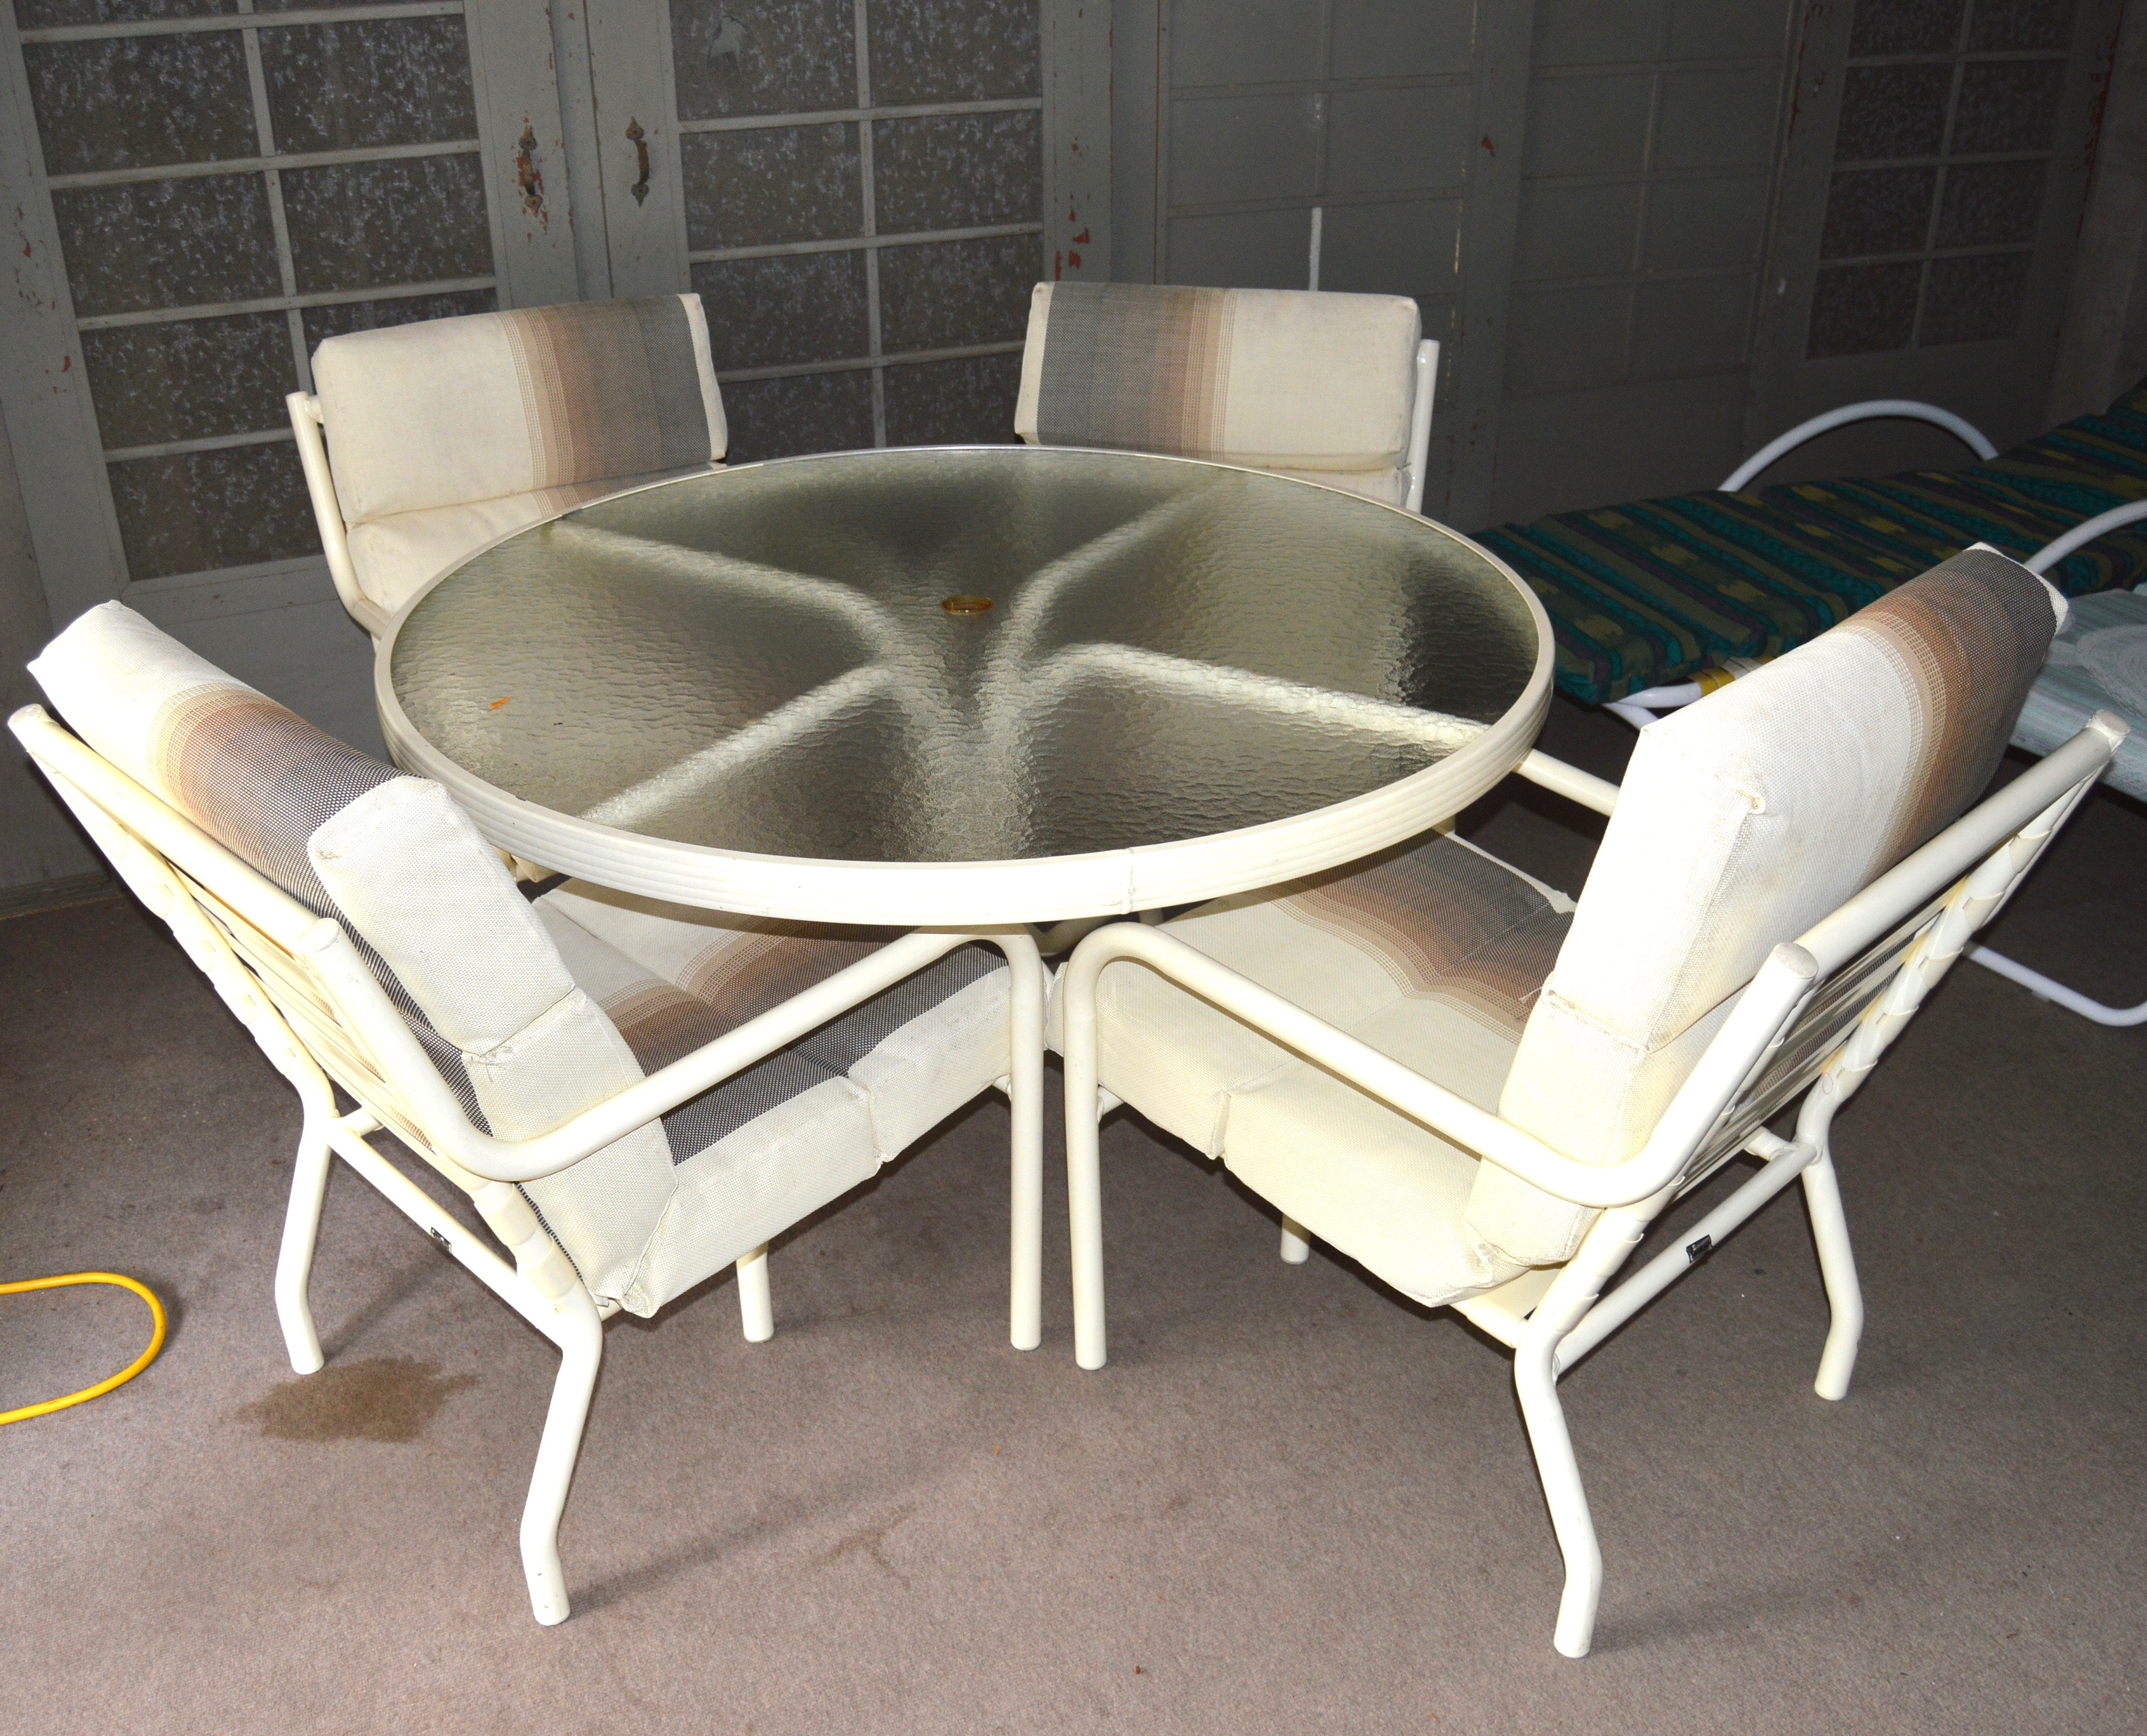 Patio Dining Table, Dining Chairs and Lounge Chairs